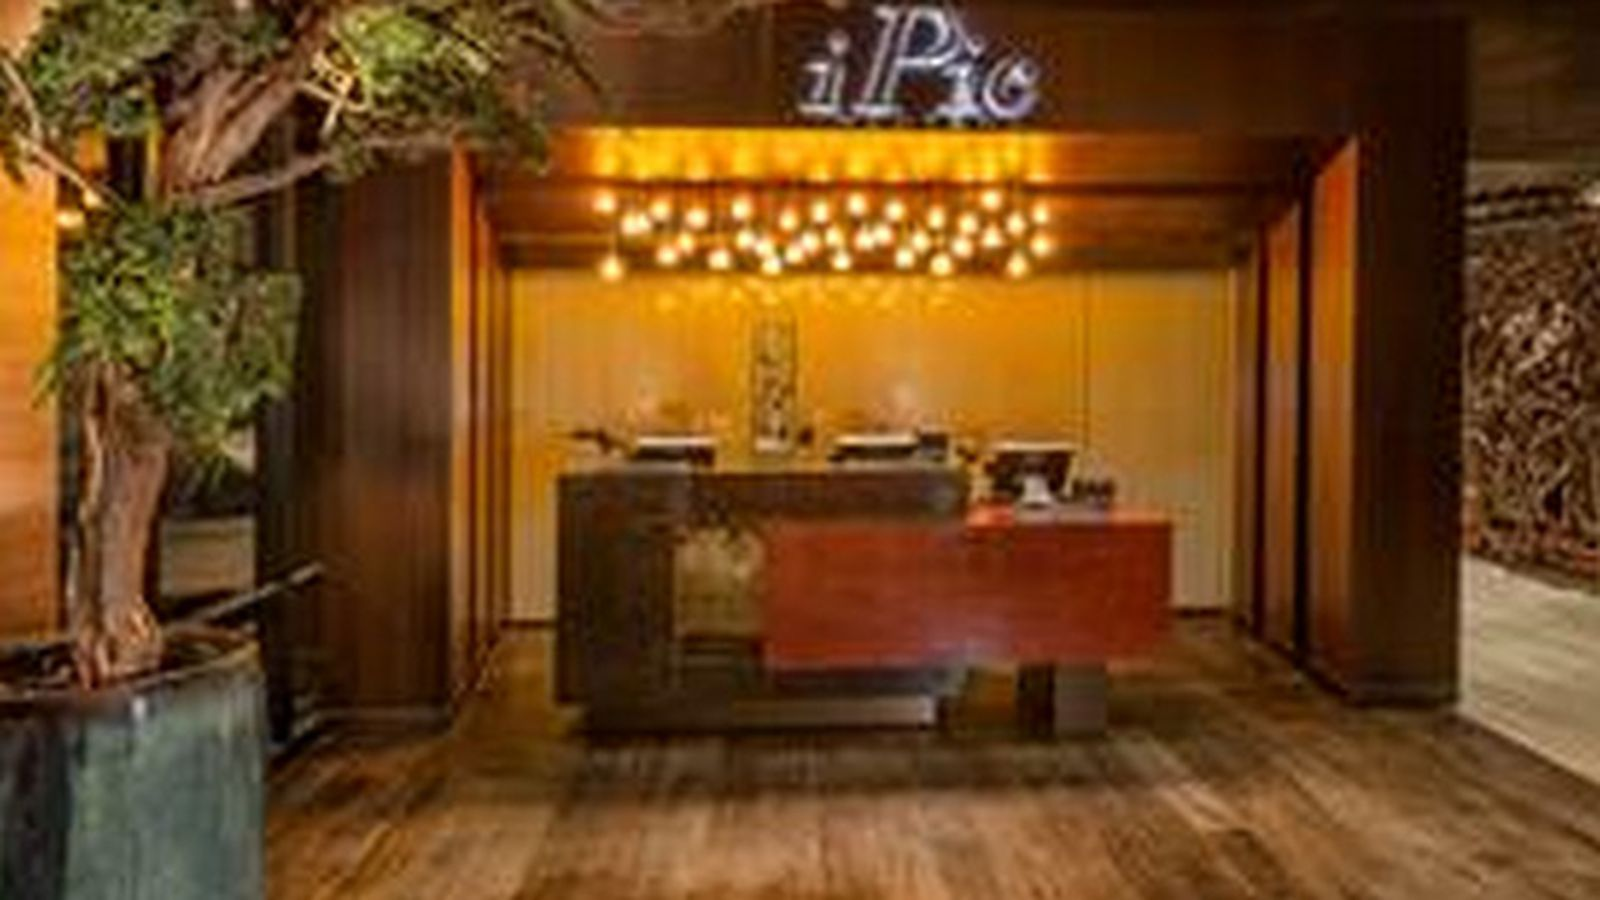 Ipic Theaters Premieres Today In Westwood Eater La